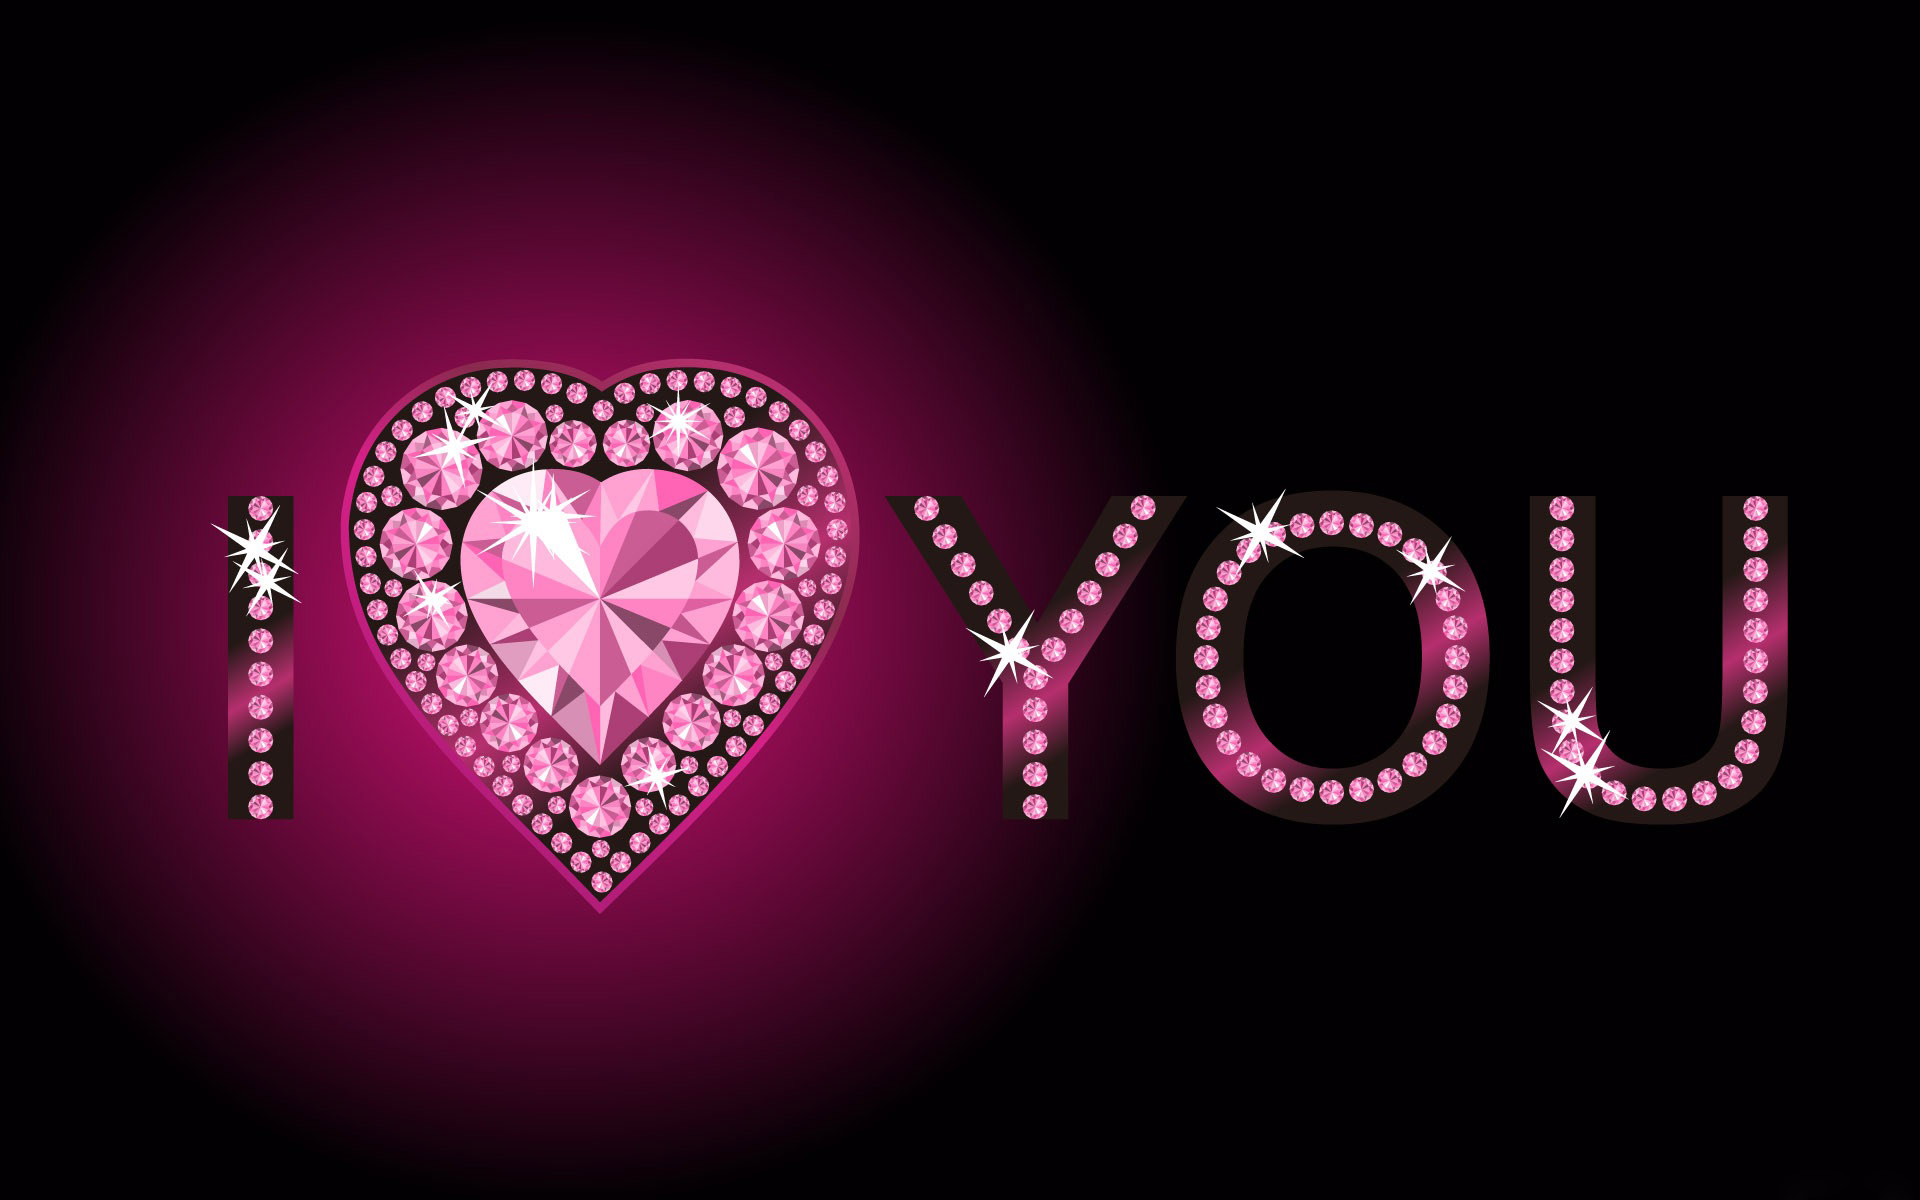 Best images about I LOVE YOU on Pinterest  Animated clipart 1920x1200